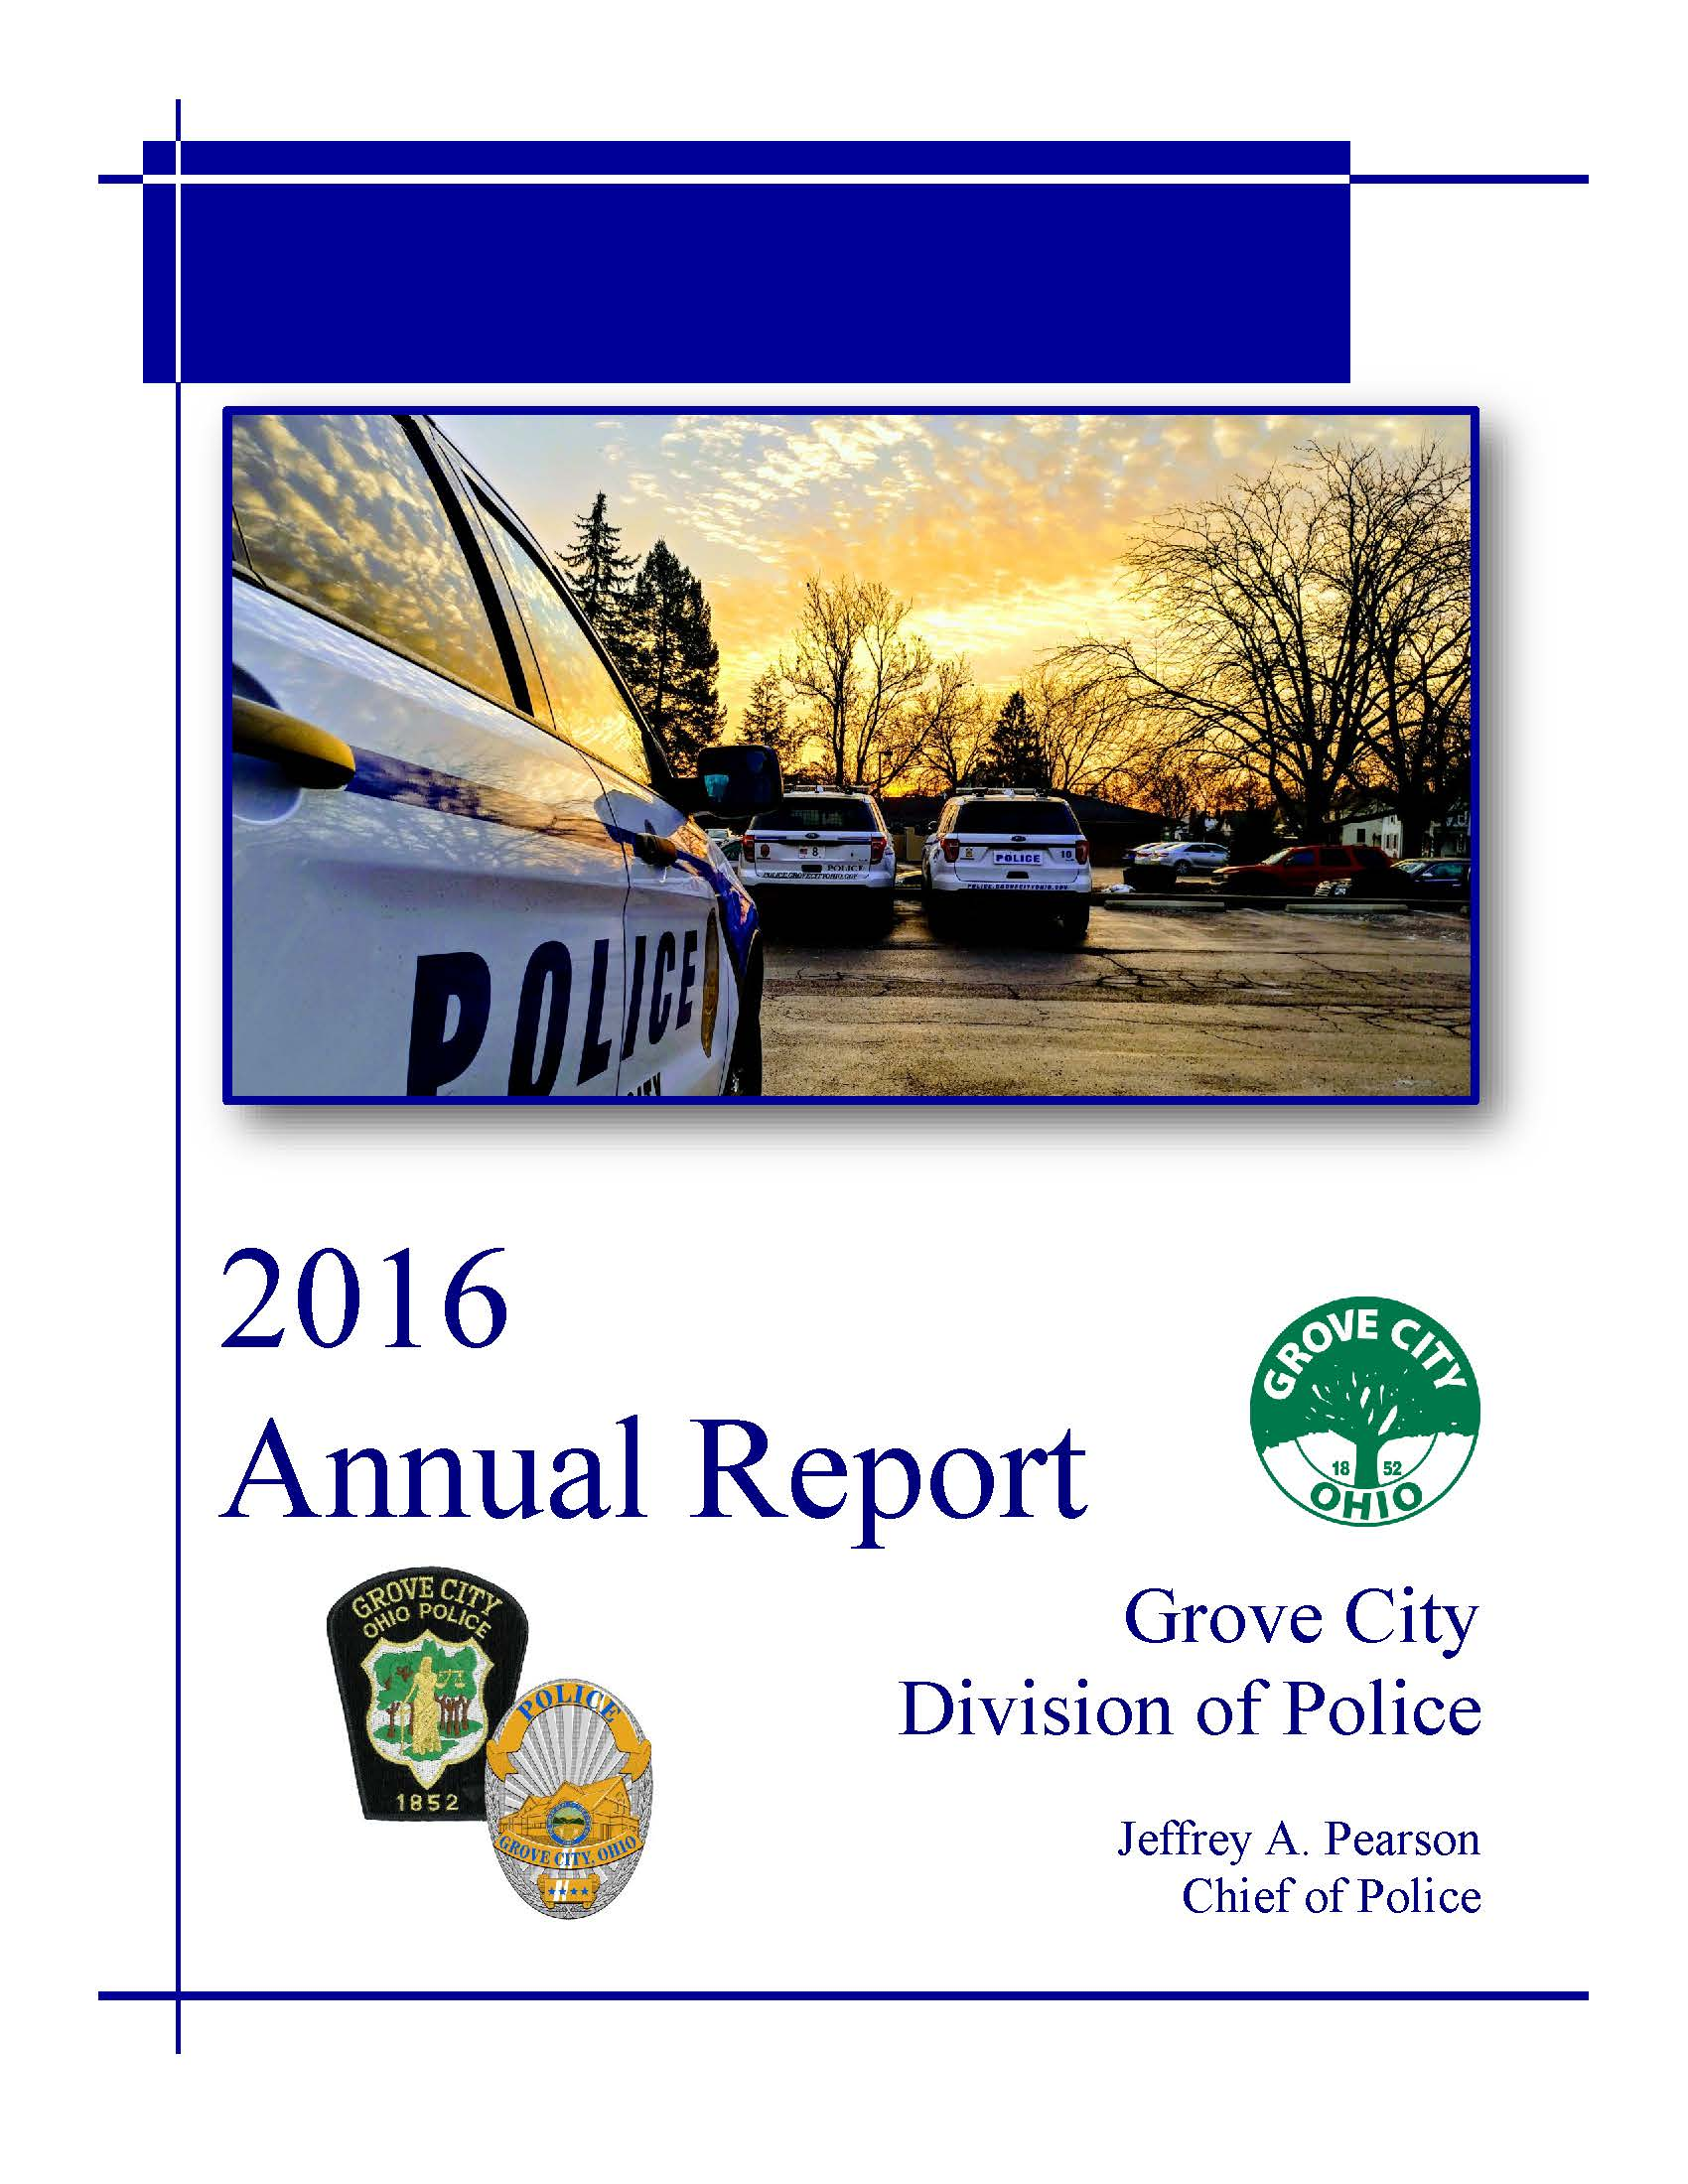 division of police grove city ohio